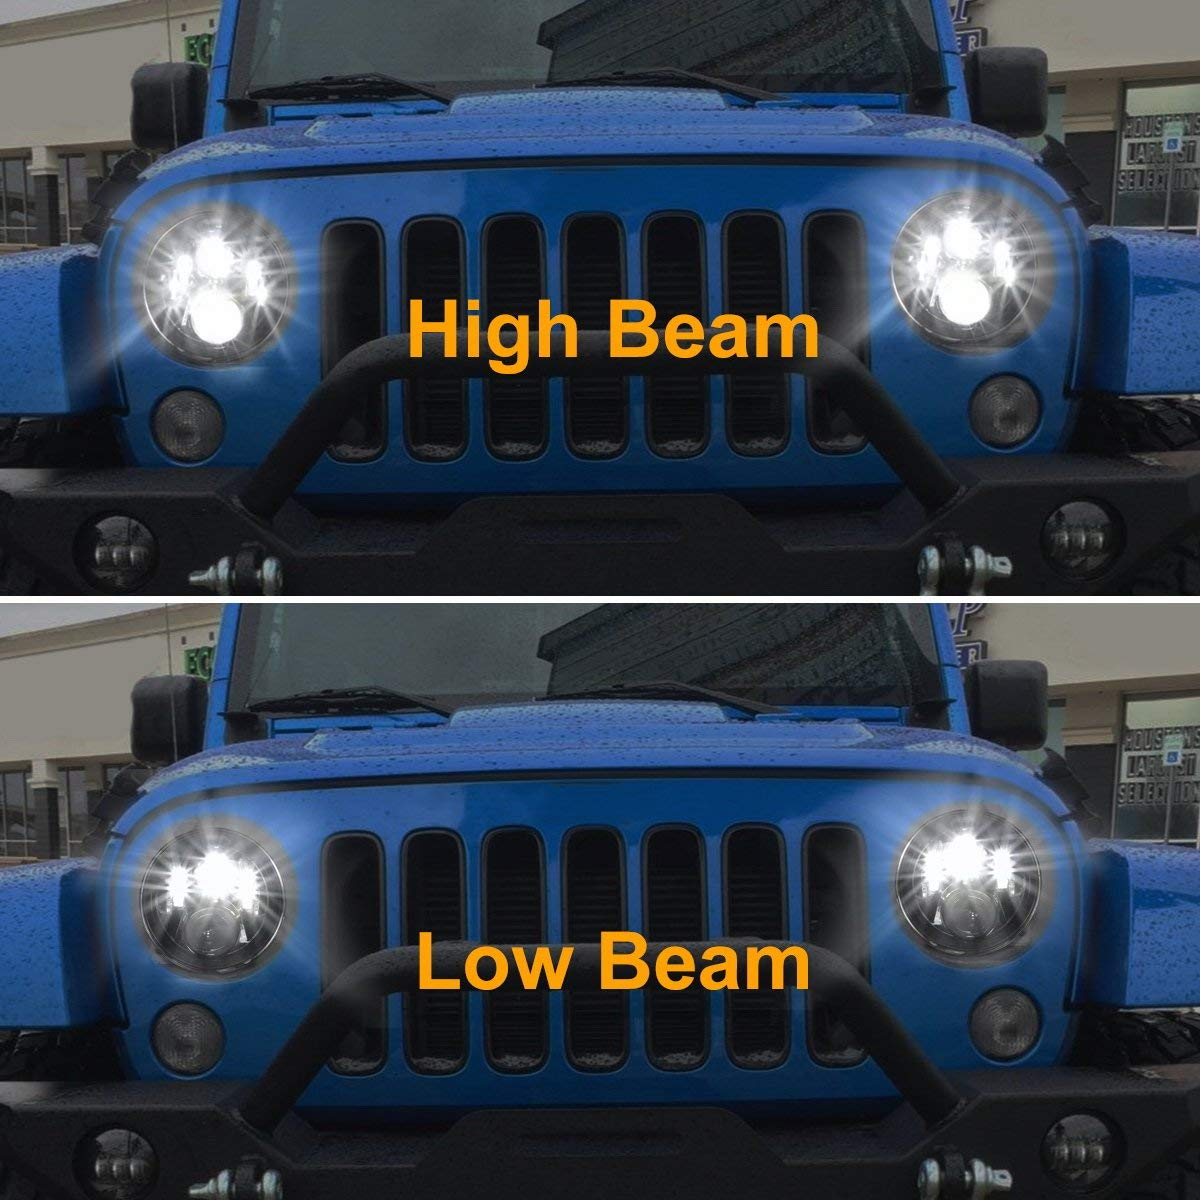 2pcs 7 Inch Round Led Headlights Daymaker Bulb With Hi Exciting Scout Crafts 1 Or 2 Headlamp Lo Beam Replacement For Jeep Wrangler Jk Tj Cruiser Hummer H1 H2 Harley